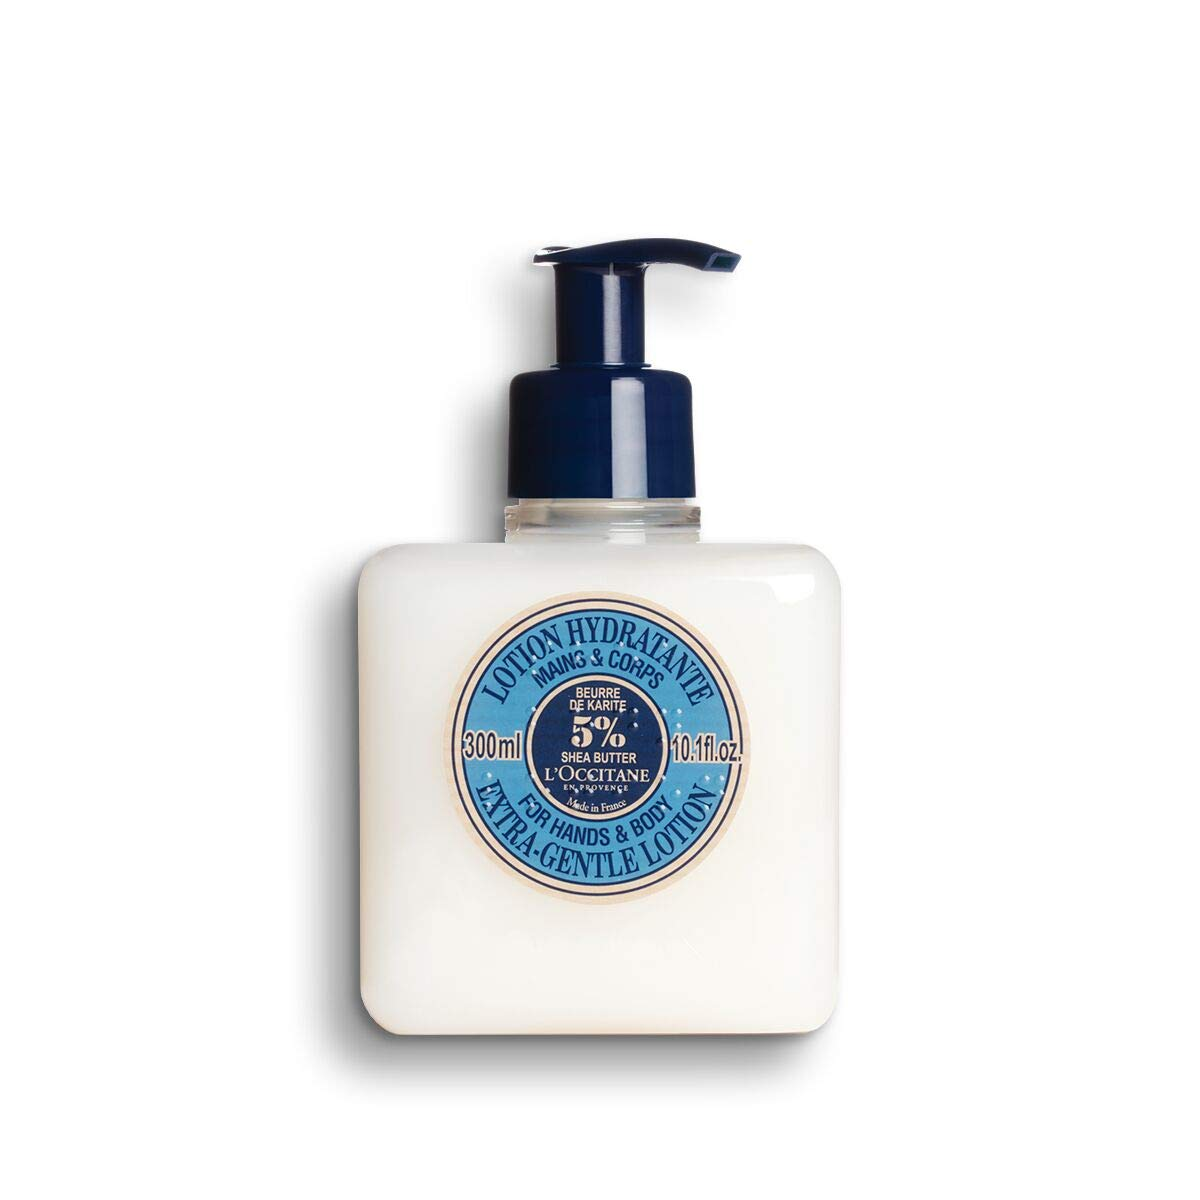 L'Occitane Extra-Gentle 5% Shea Butter Hand & Body Lotion, 10.1Fl Oz